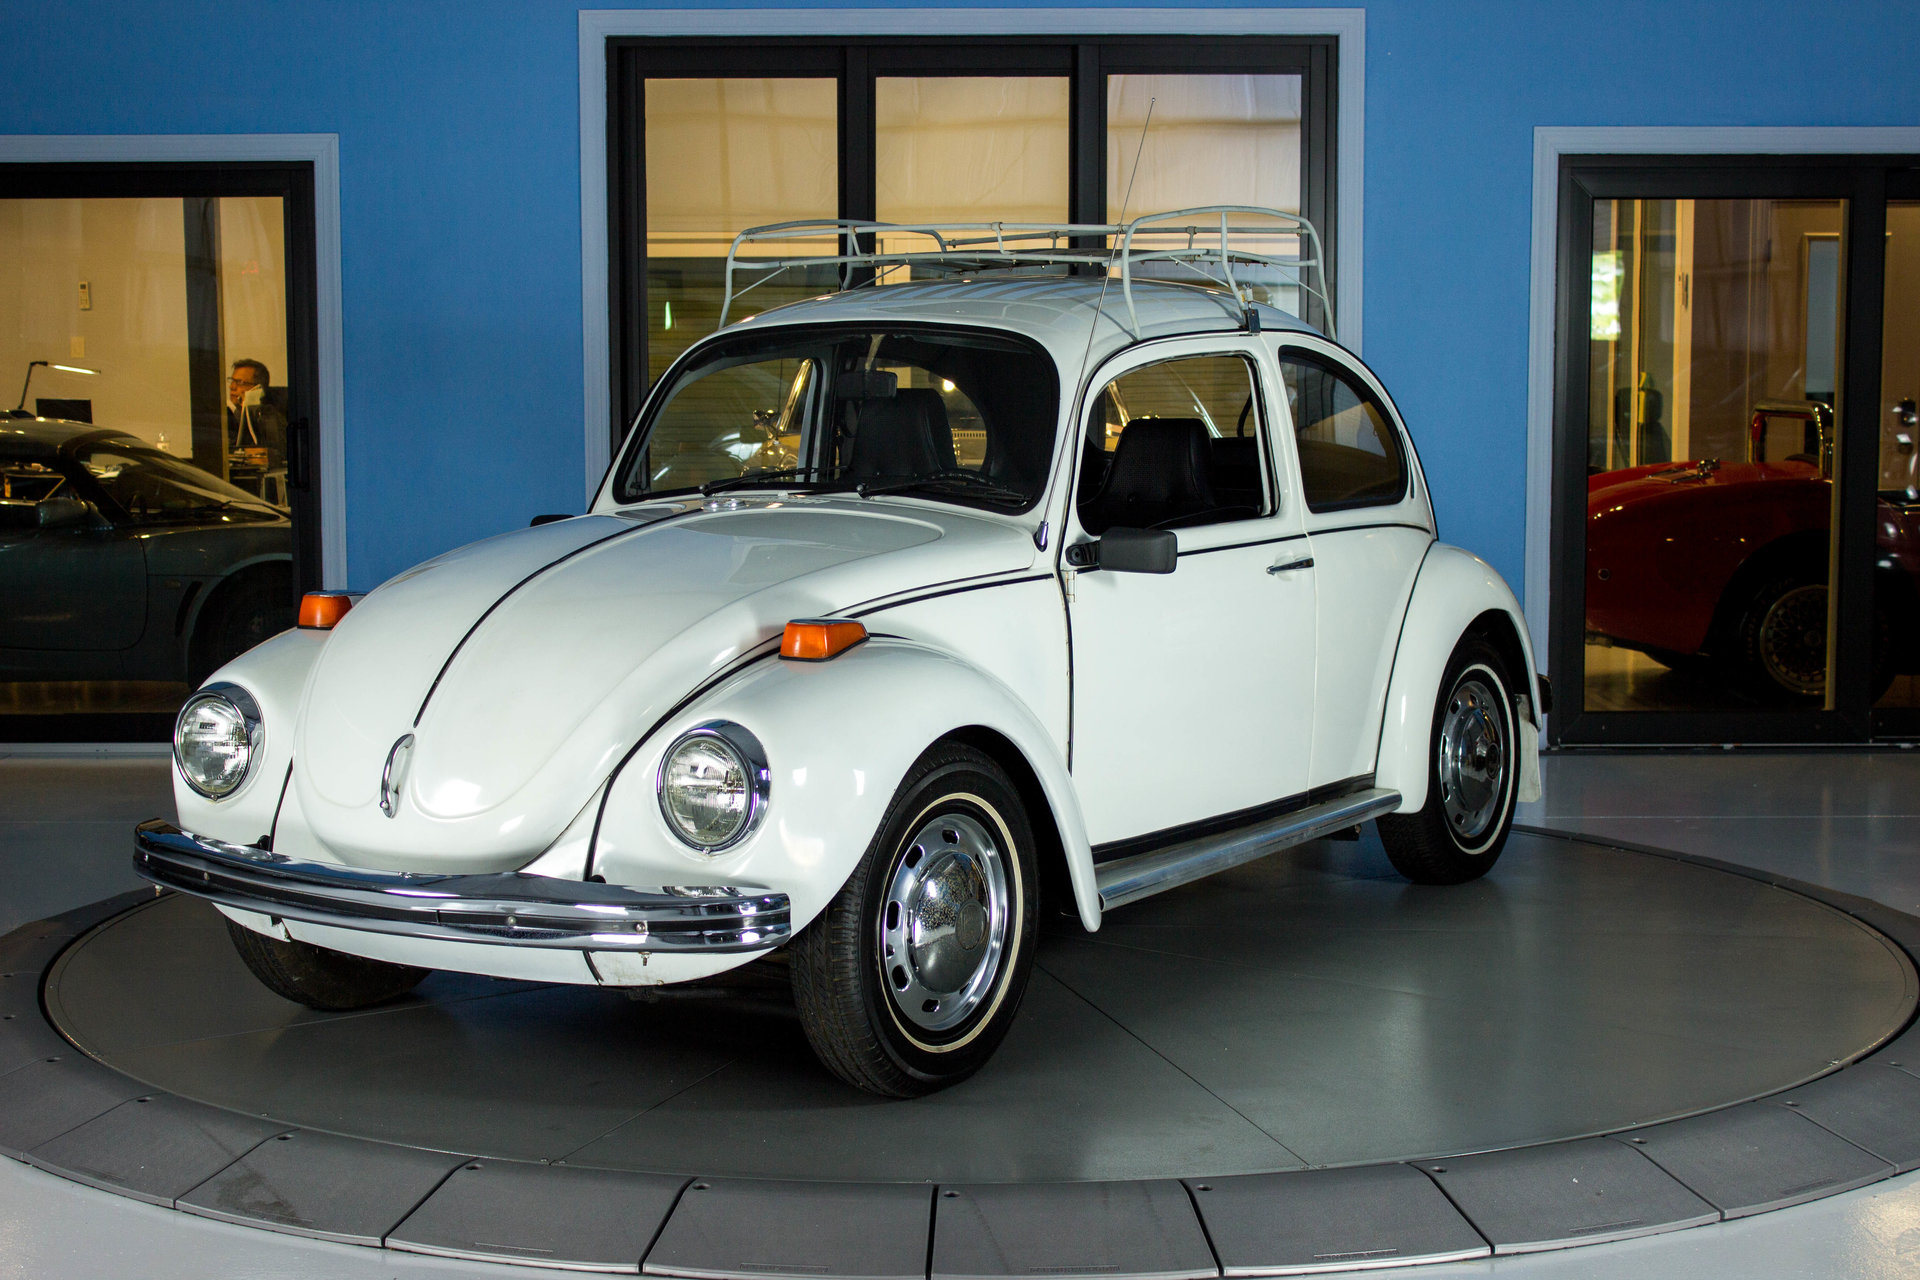 1971 volkswagen beetle classic cars used cars for sale in tampa fl. Black Bedroom Furniture Sets. Home Design Ideas